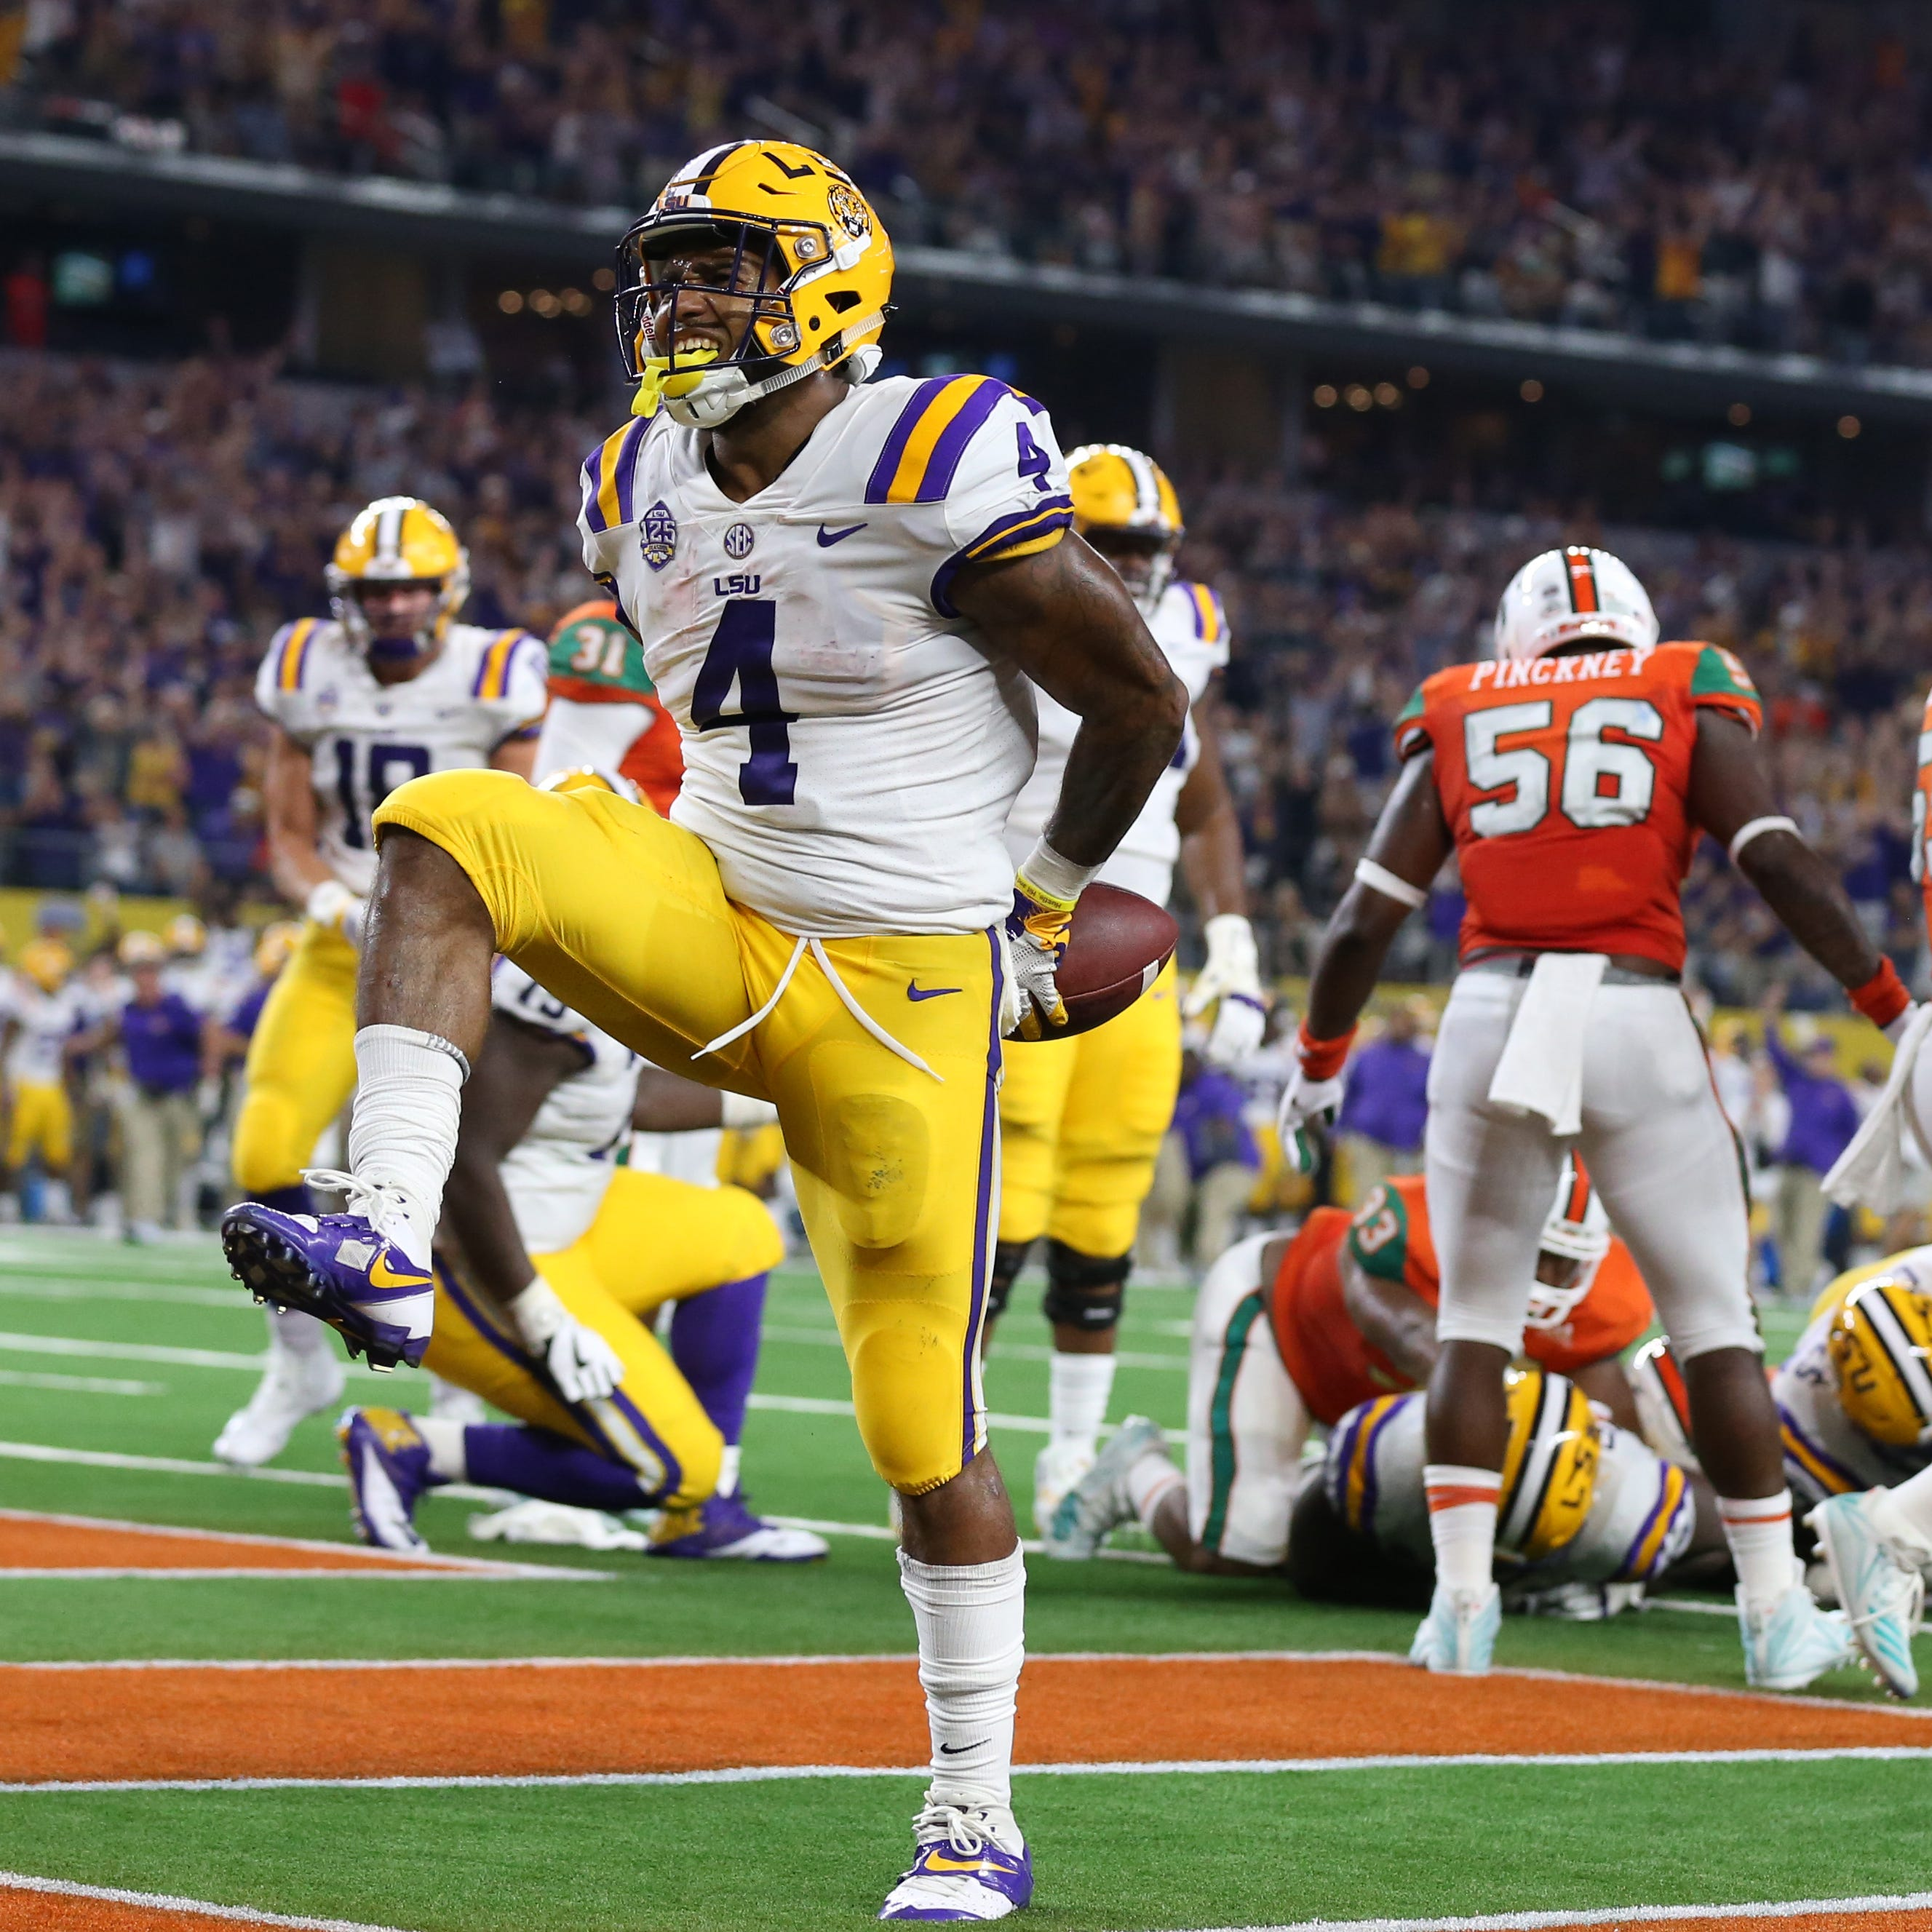 Amway Coaches Poll: Clemson stays steady at No. 2 as LSU jumps nine spots